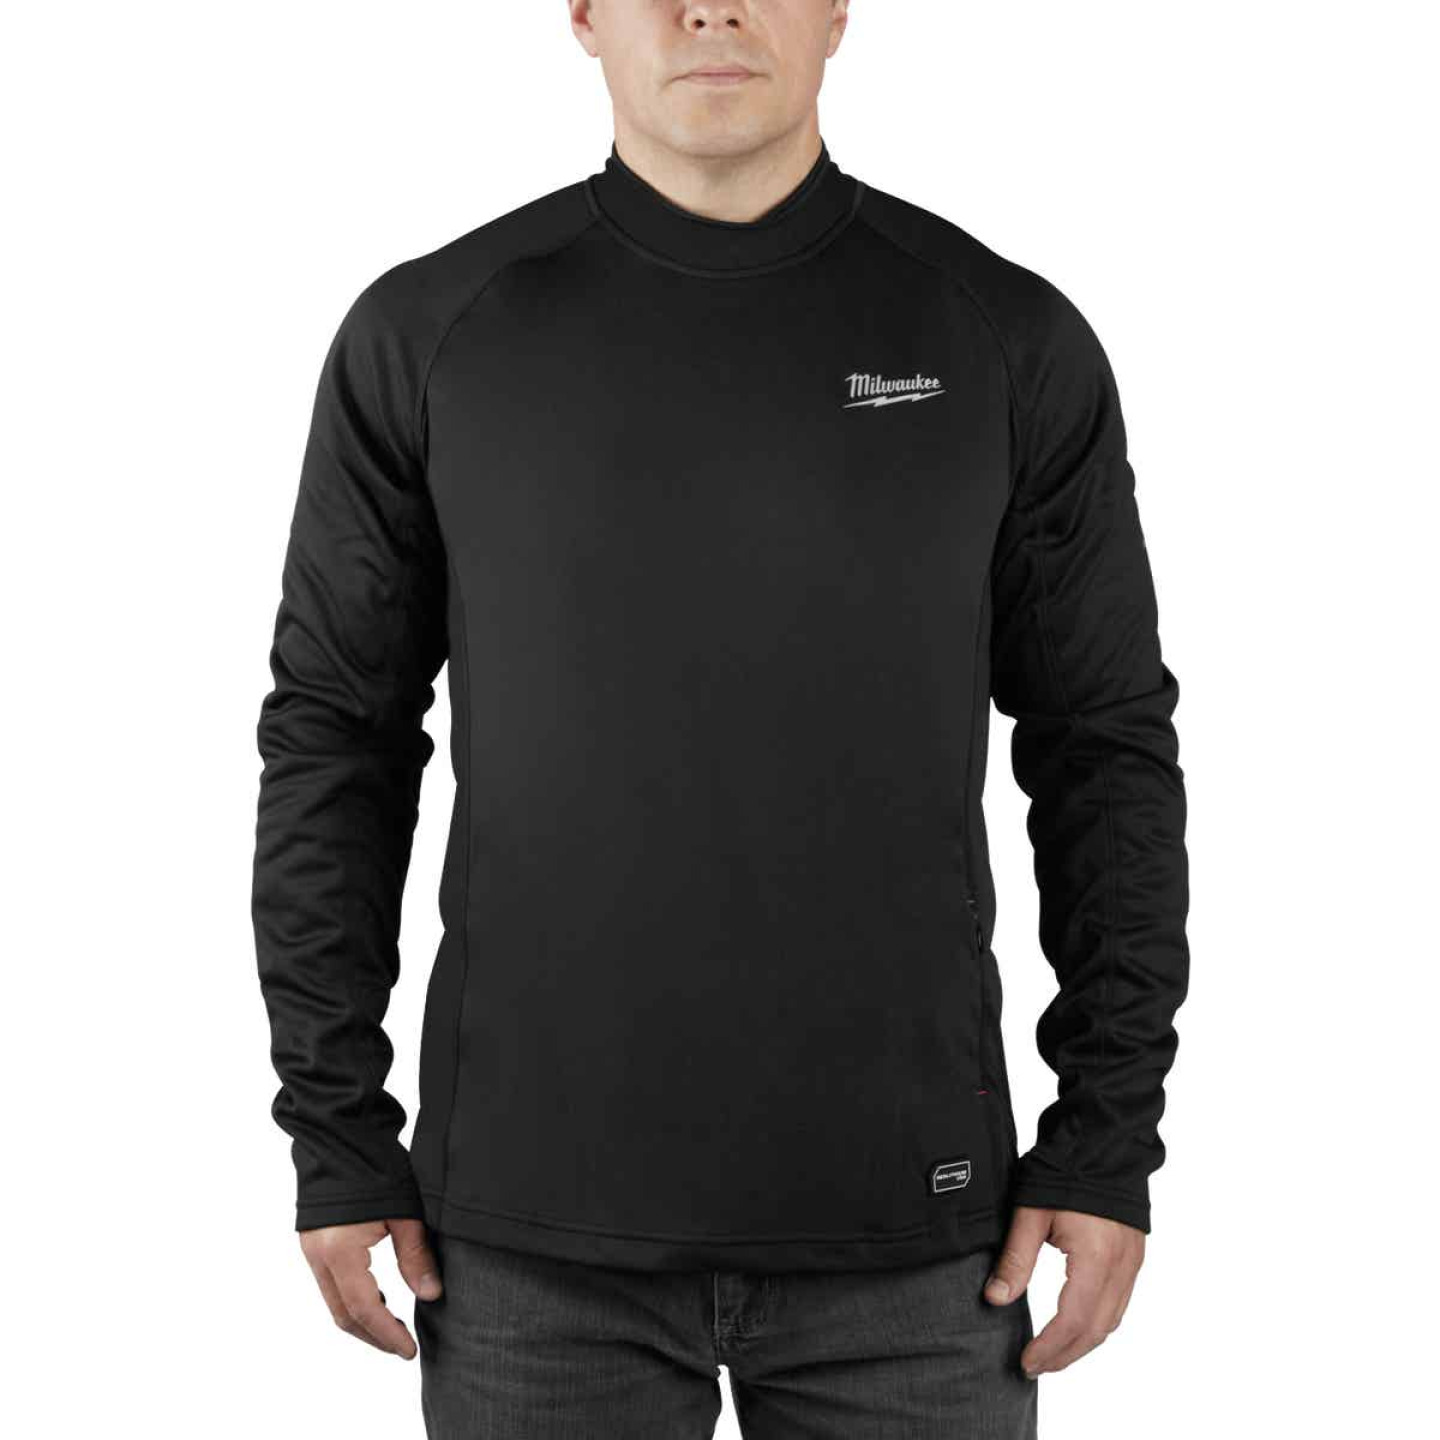 Milwaukee Workskin XL Black Heated Midweight Base Layer Shirt Image 1